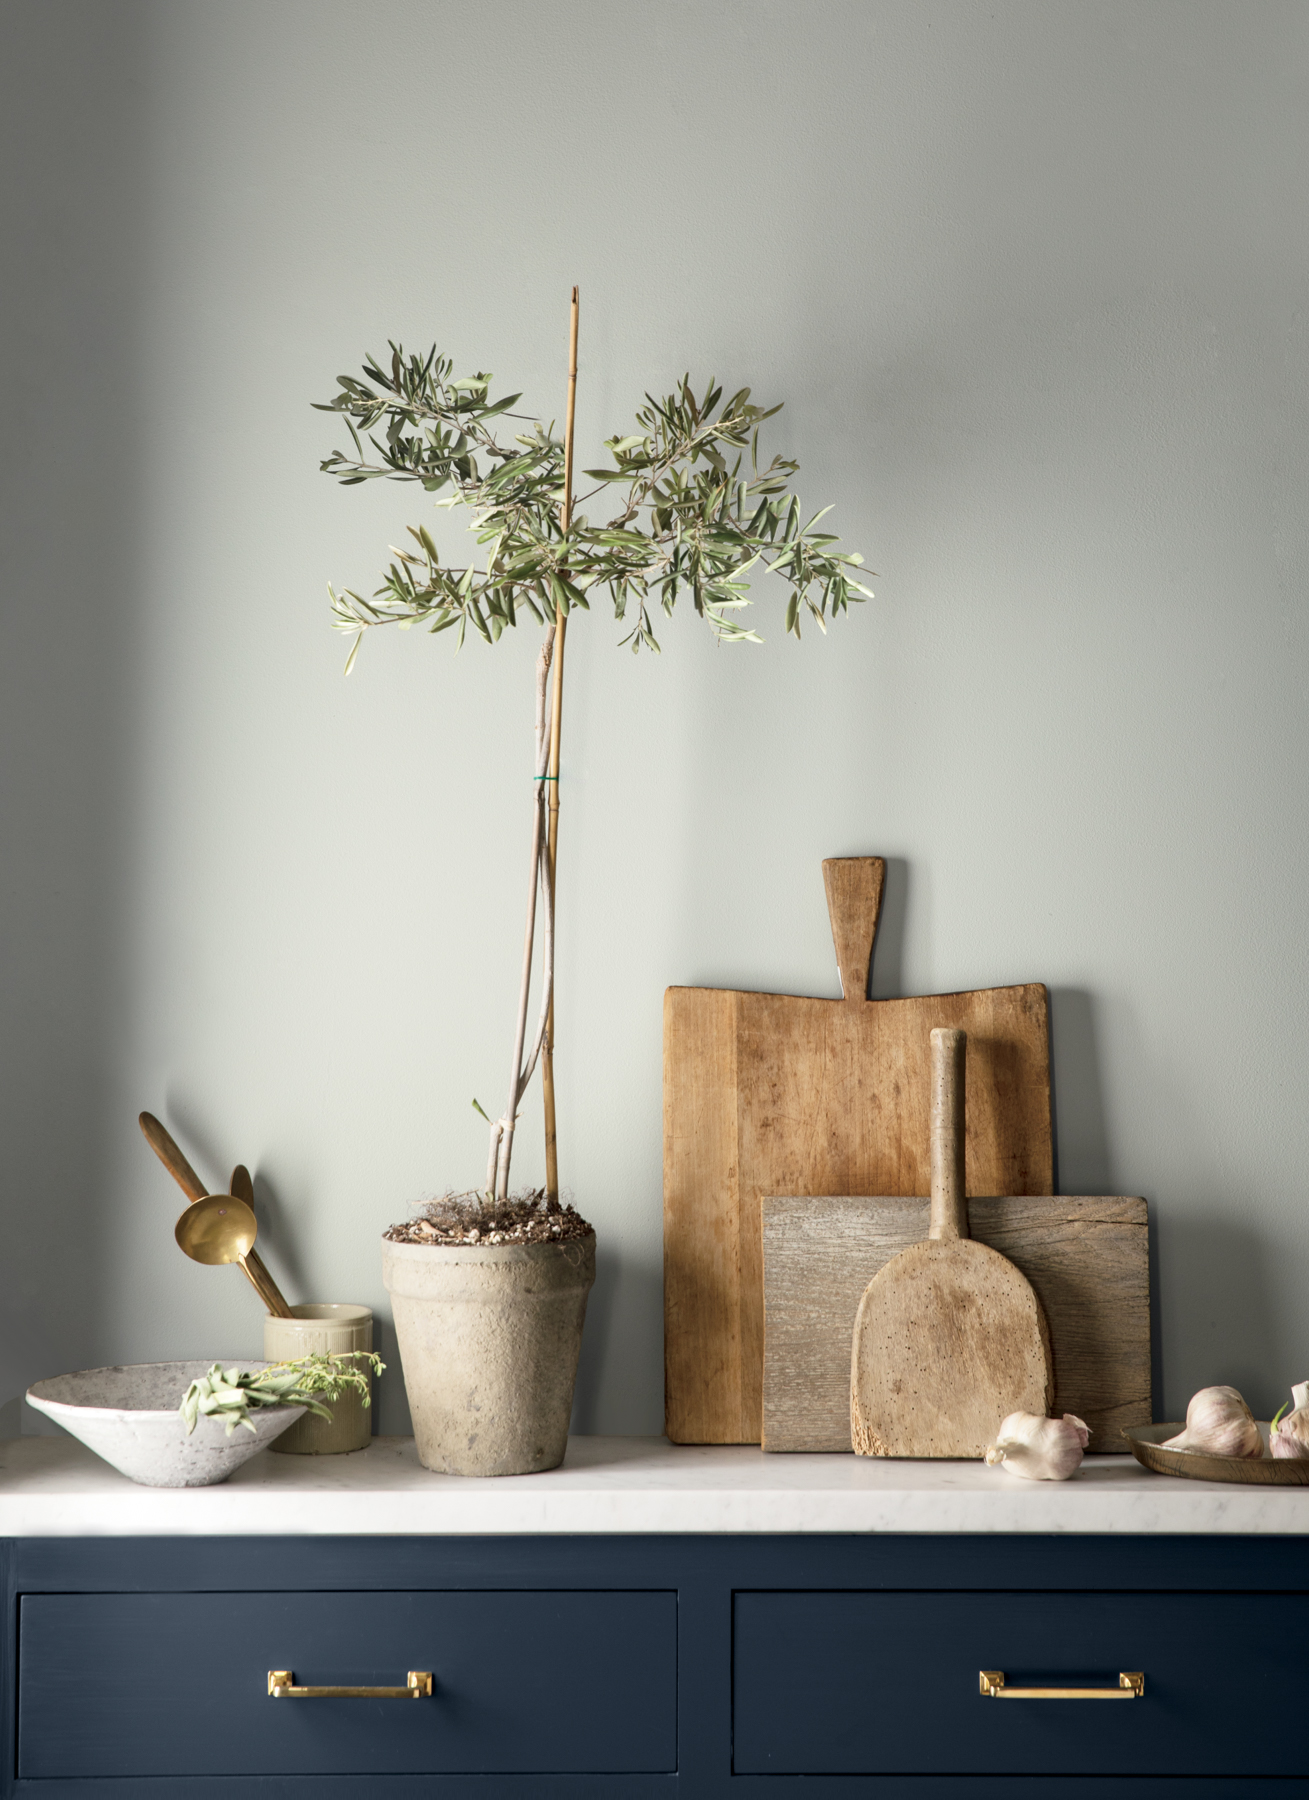 Benjamin Moore - from £20.50 for 0.94L